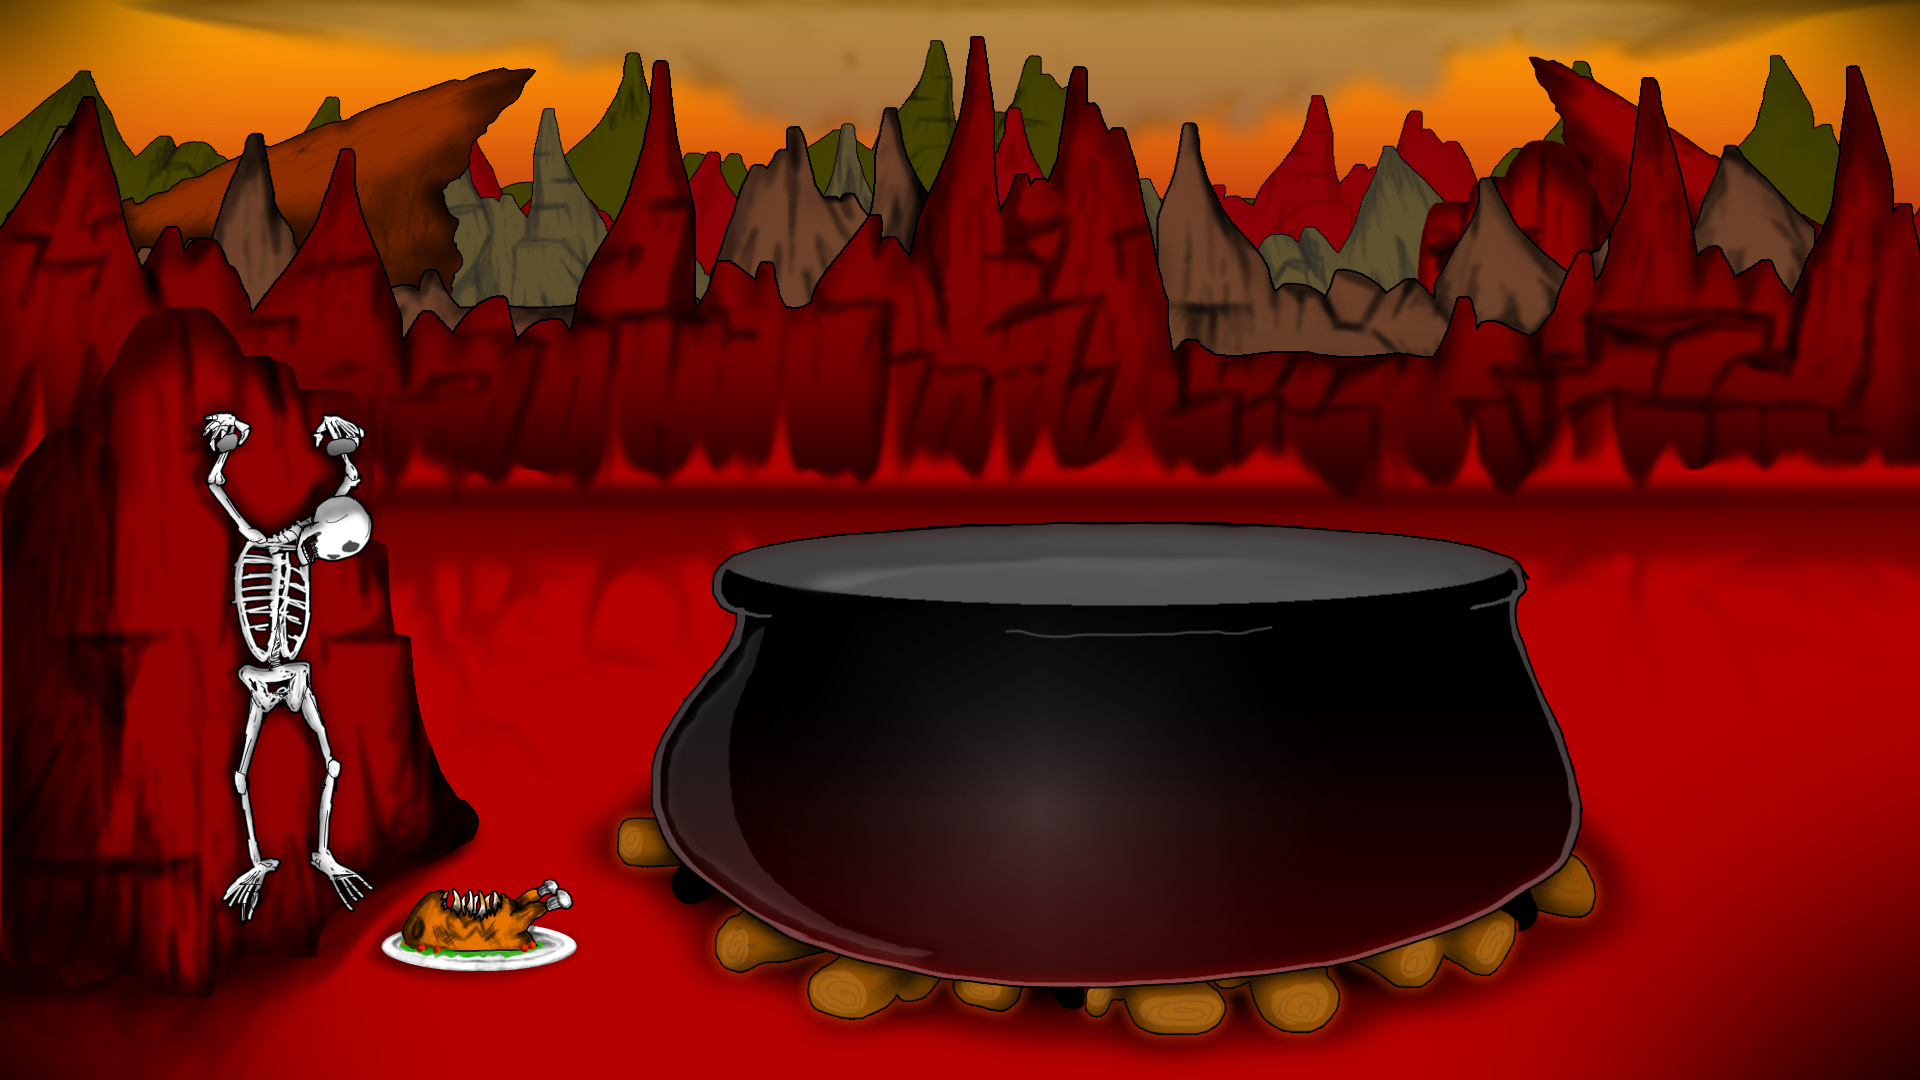 Cooking With Satan Background